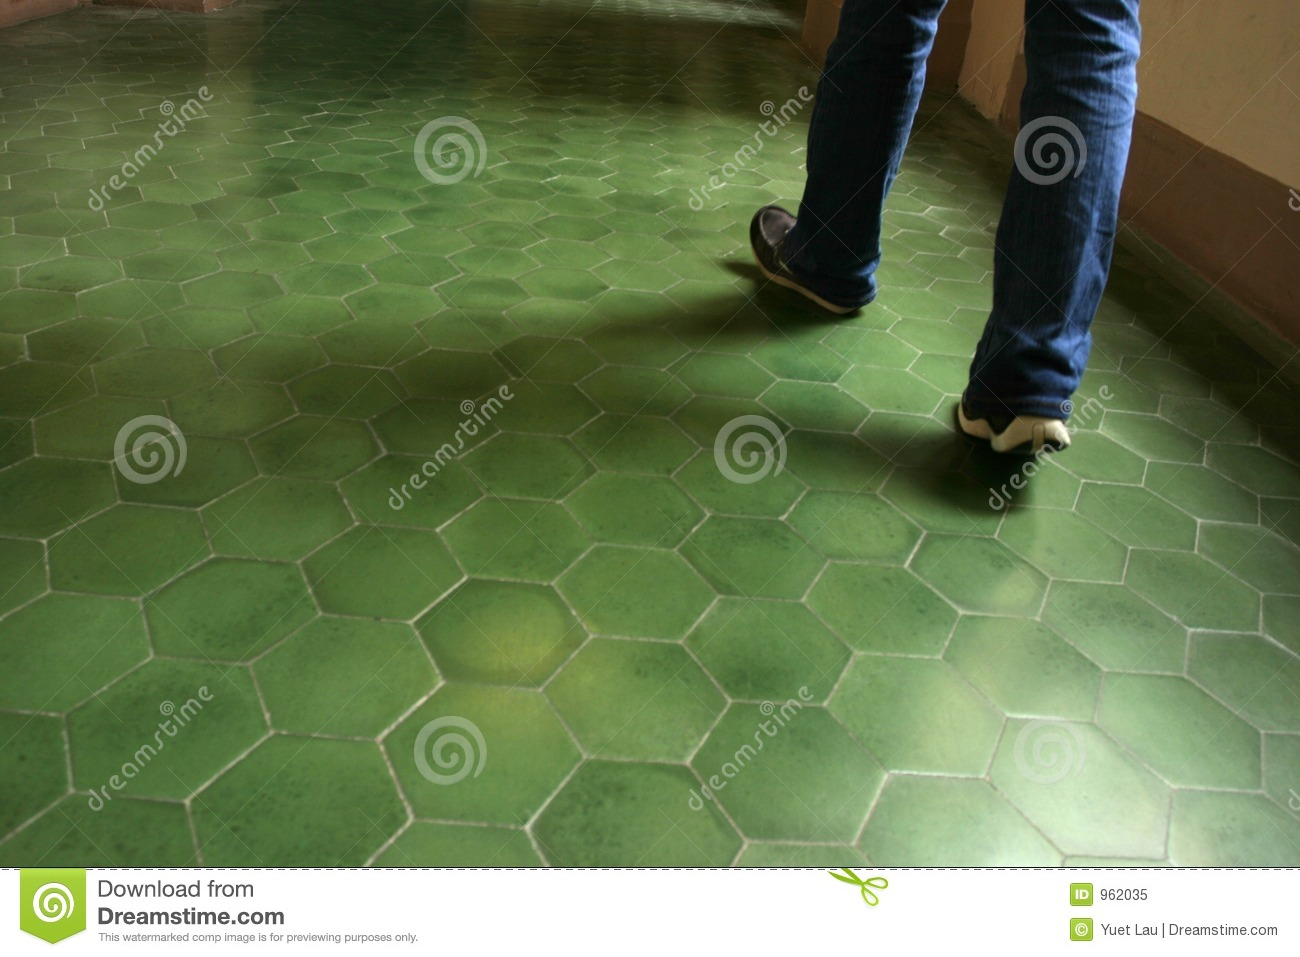 Green Tile Floor In An Ancient Building Stock Image